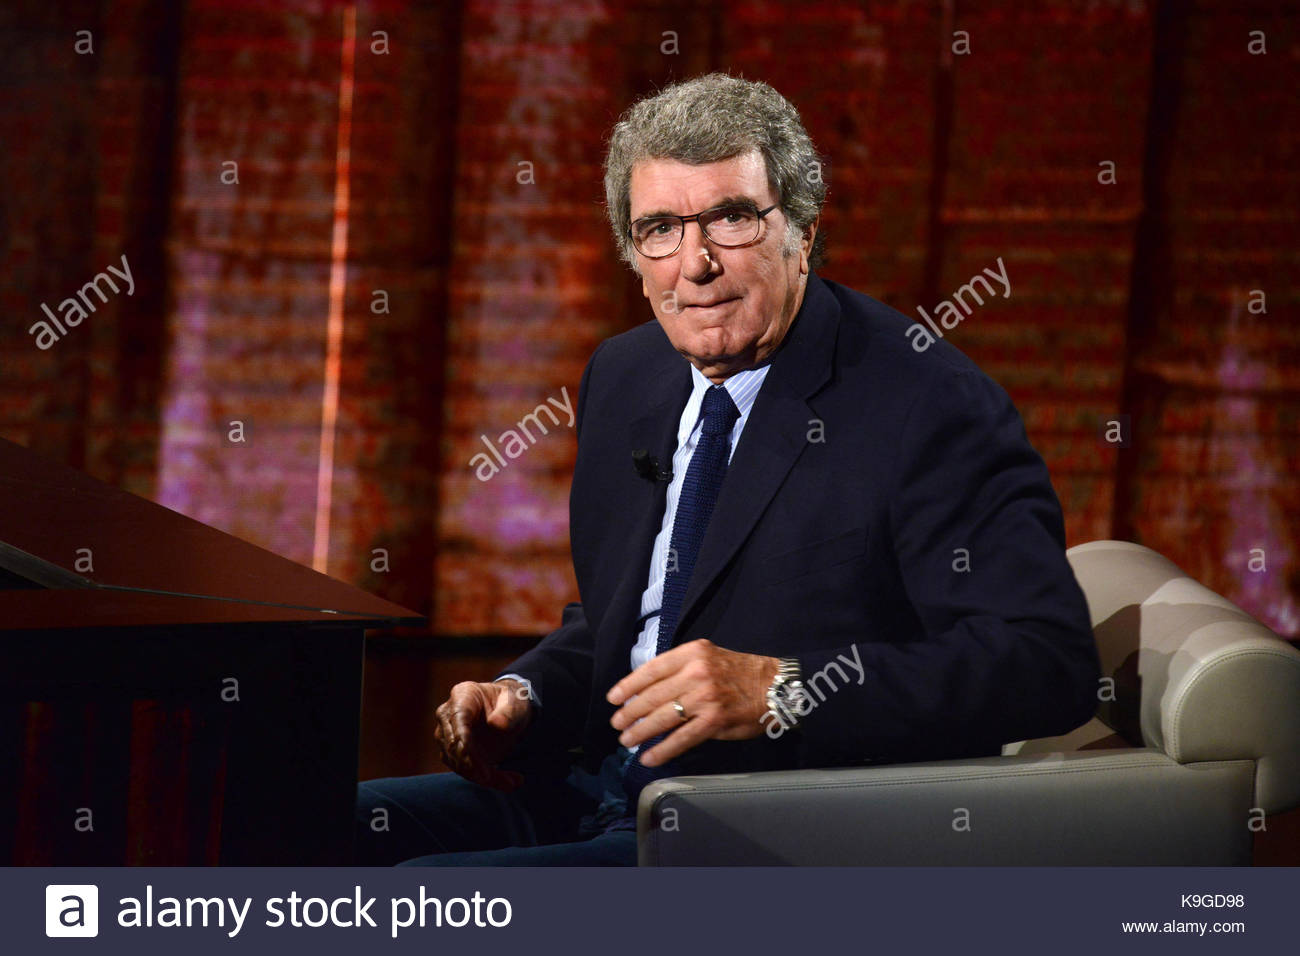 """Dino Zoff Celebrities appear on the television show """"Che tempo"""